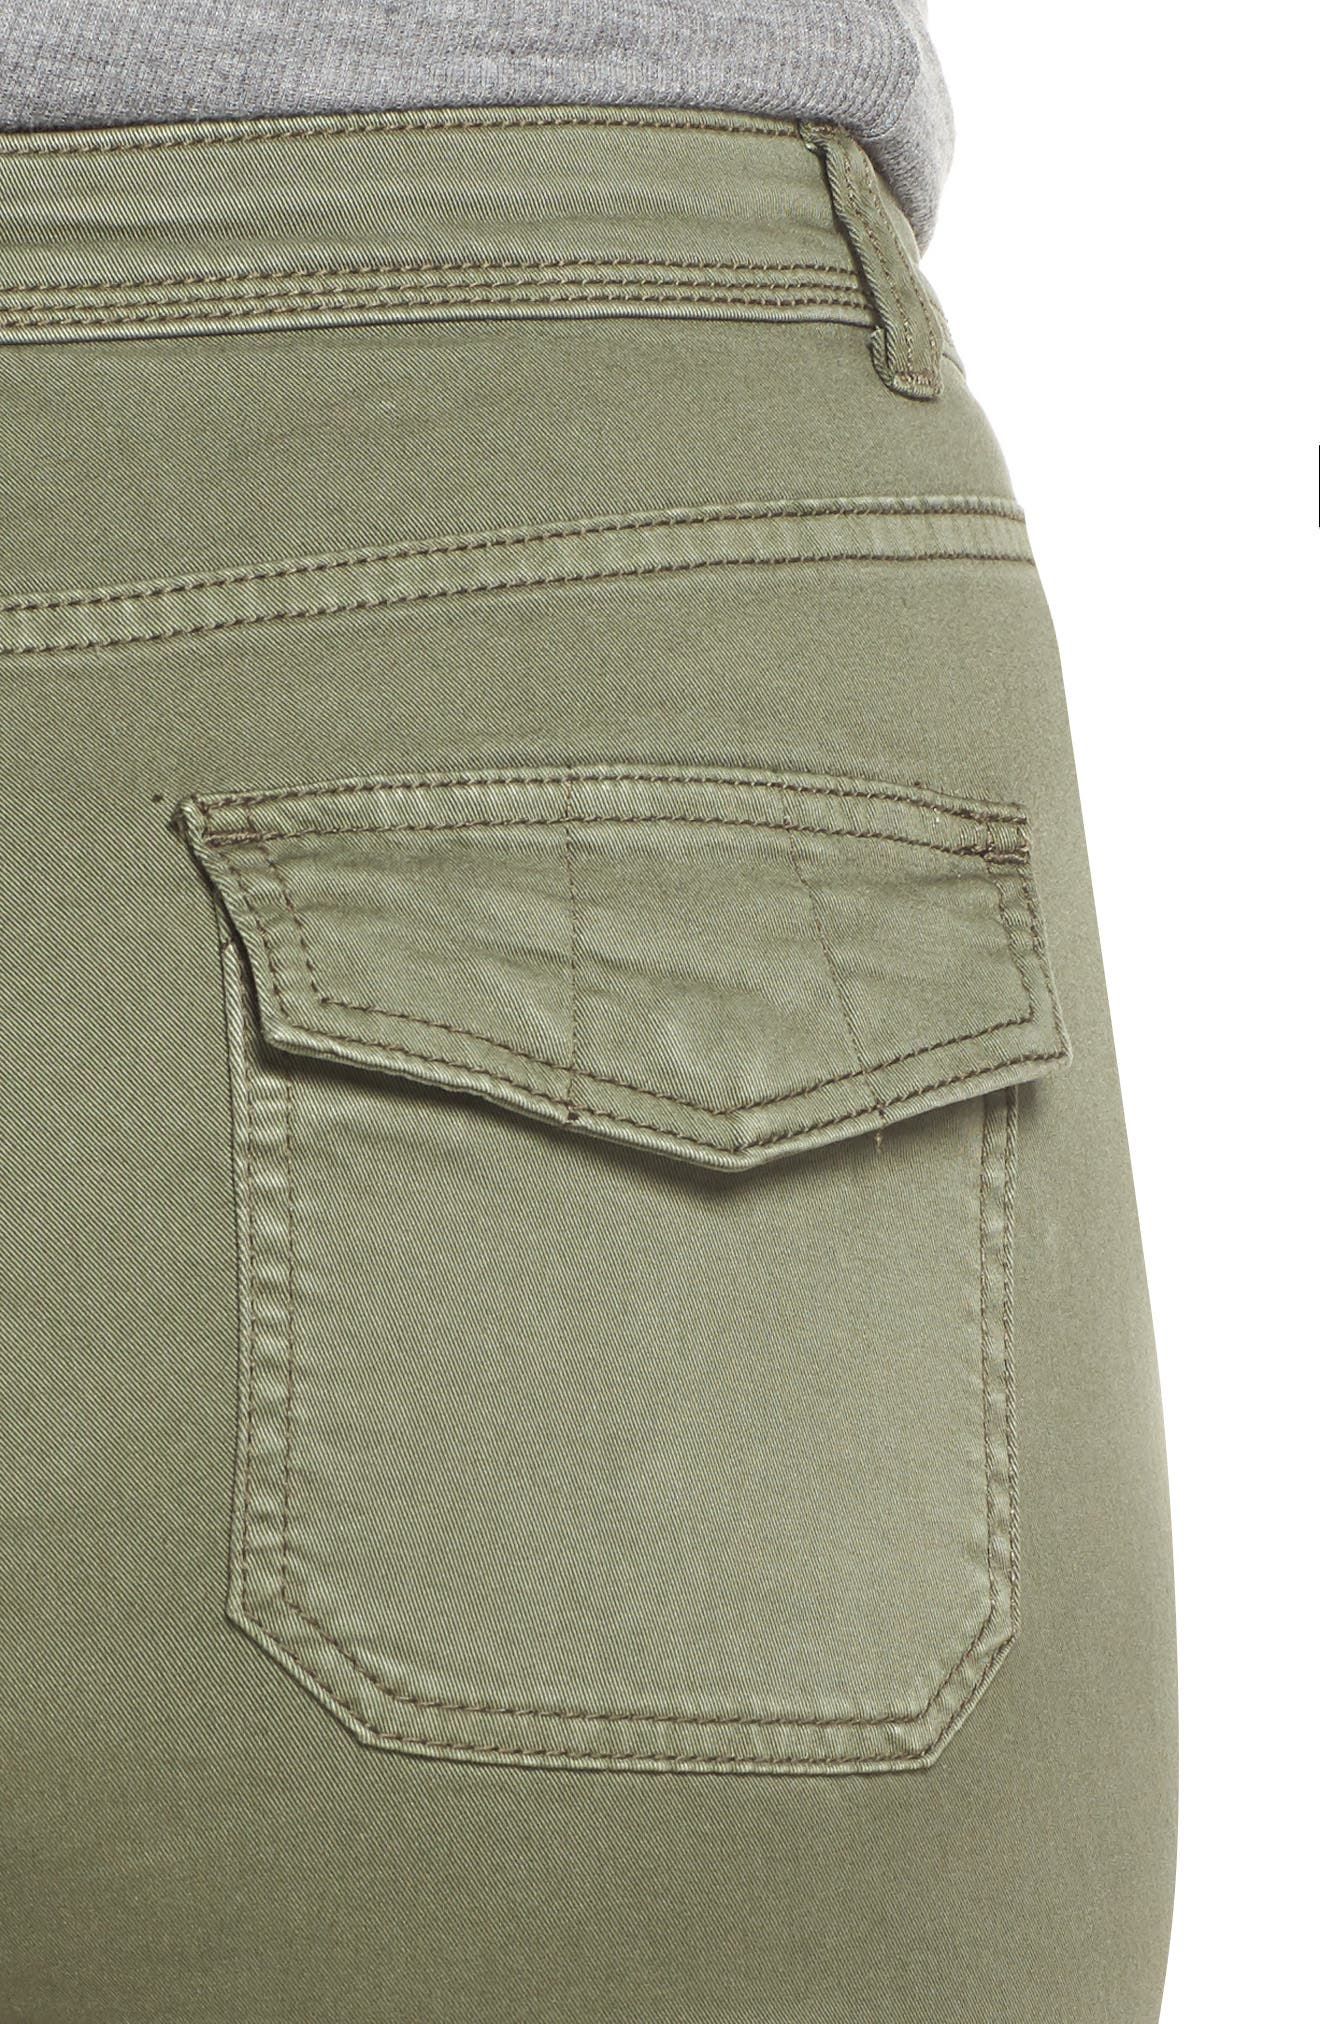 Stretch Twill Utility Pants,                             Alternate thumbnail 4, color,                             301